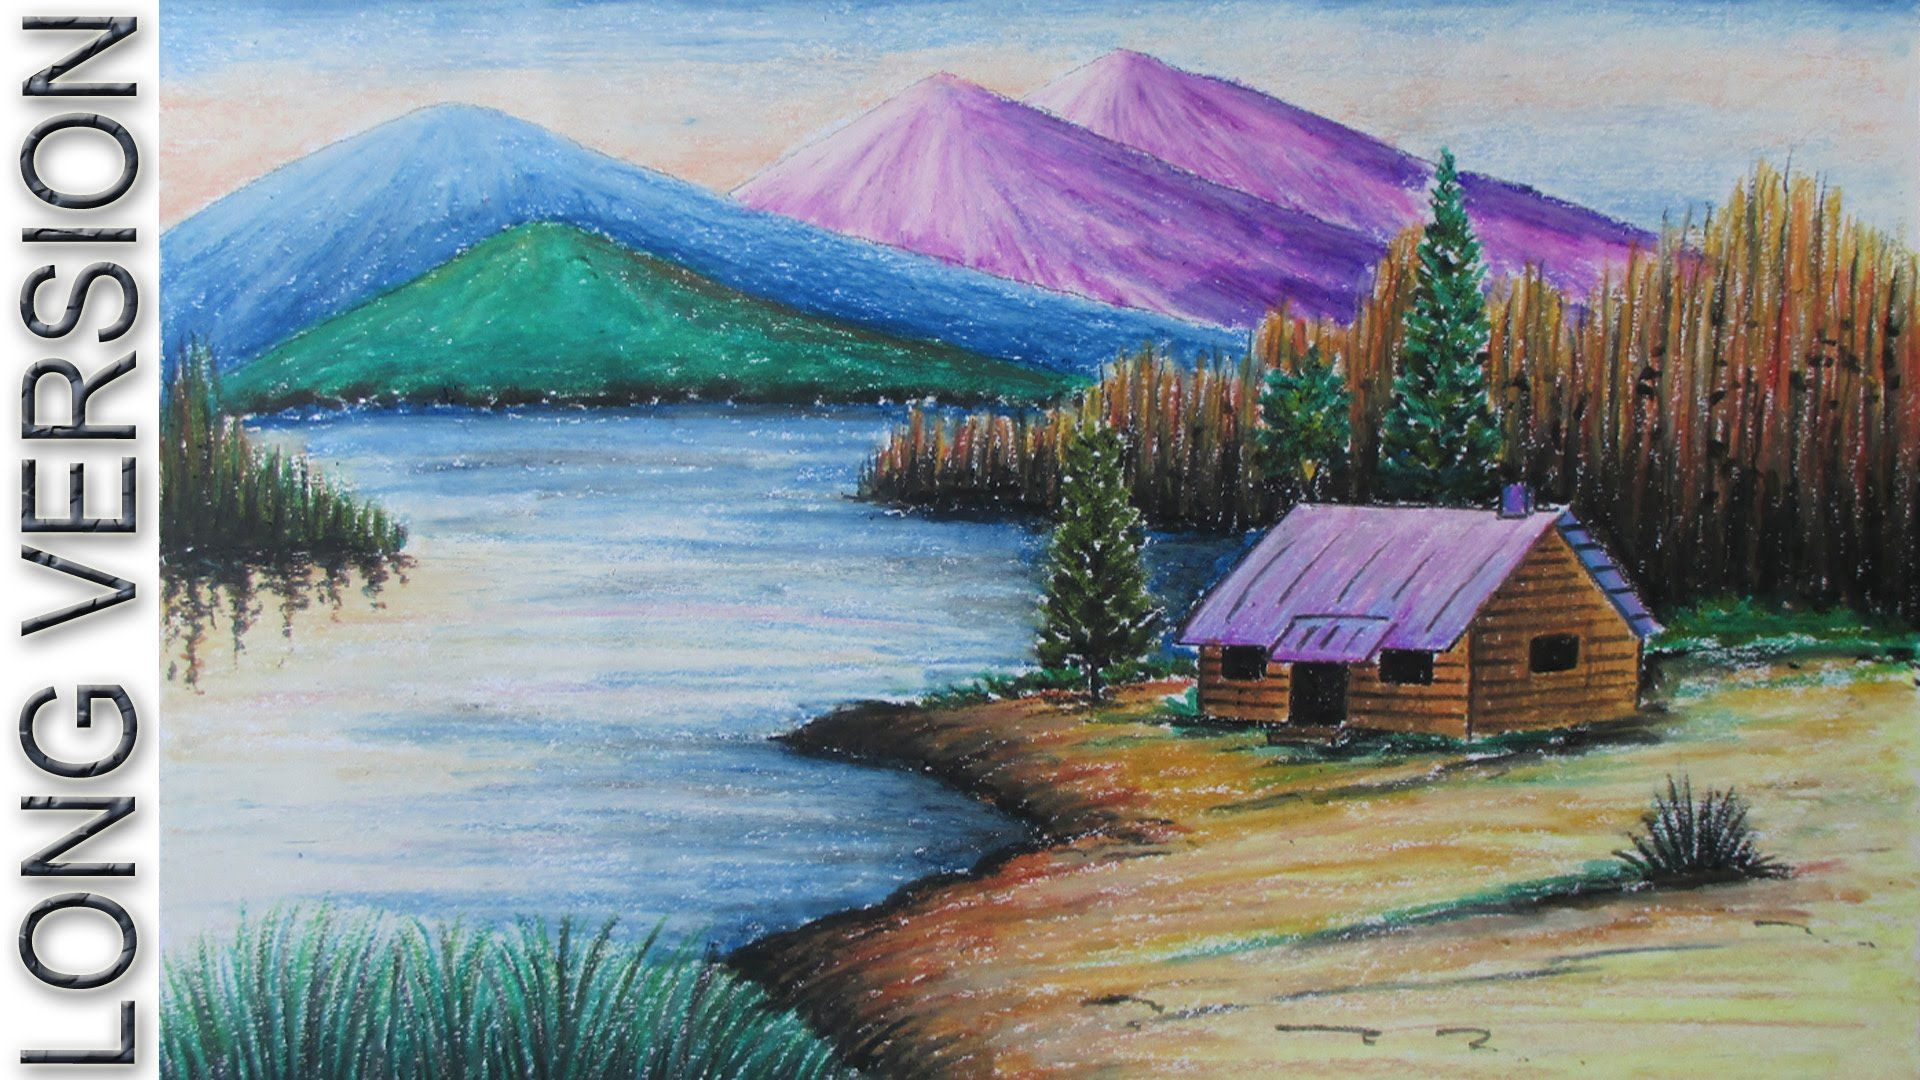 How To Draw A Mountain Landscape With Oil Pastel Long Version Drawing Scenery Oil Pastel Landscape Landscape Drawings